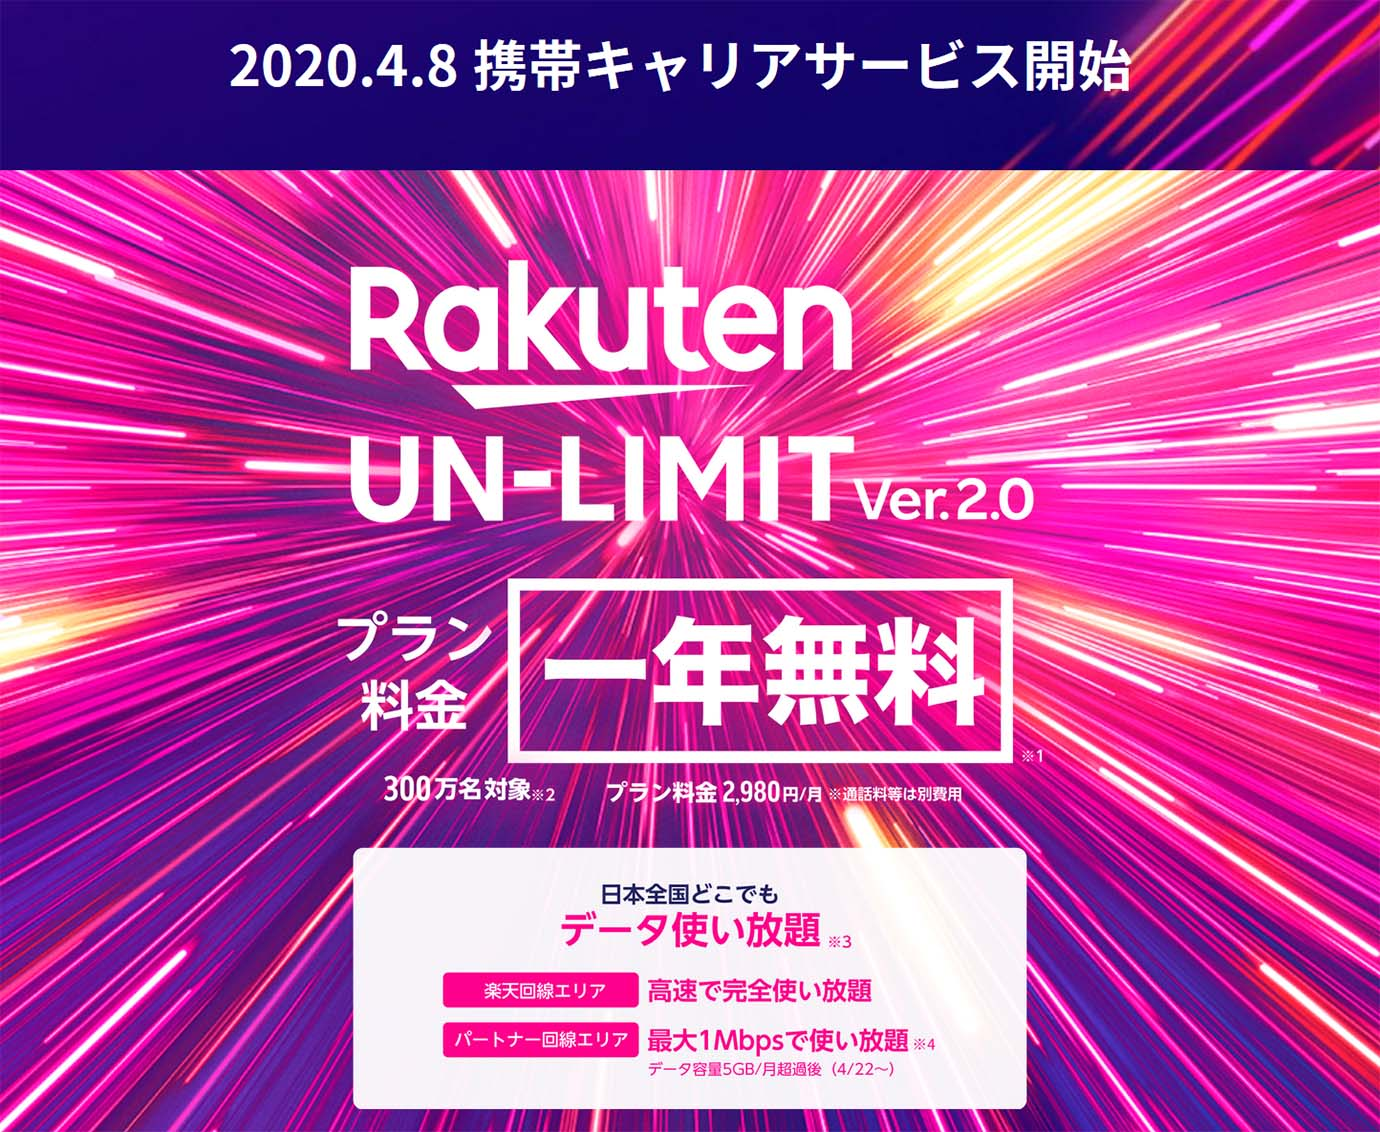 rakuten-mobile-un-limit